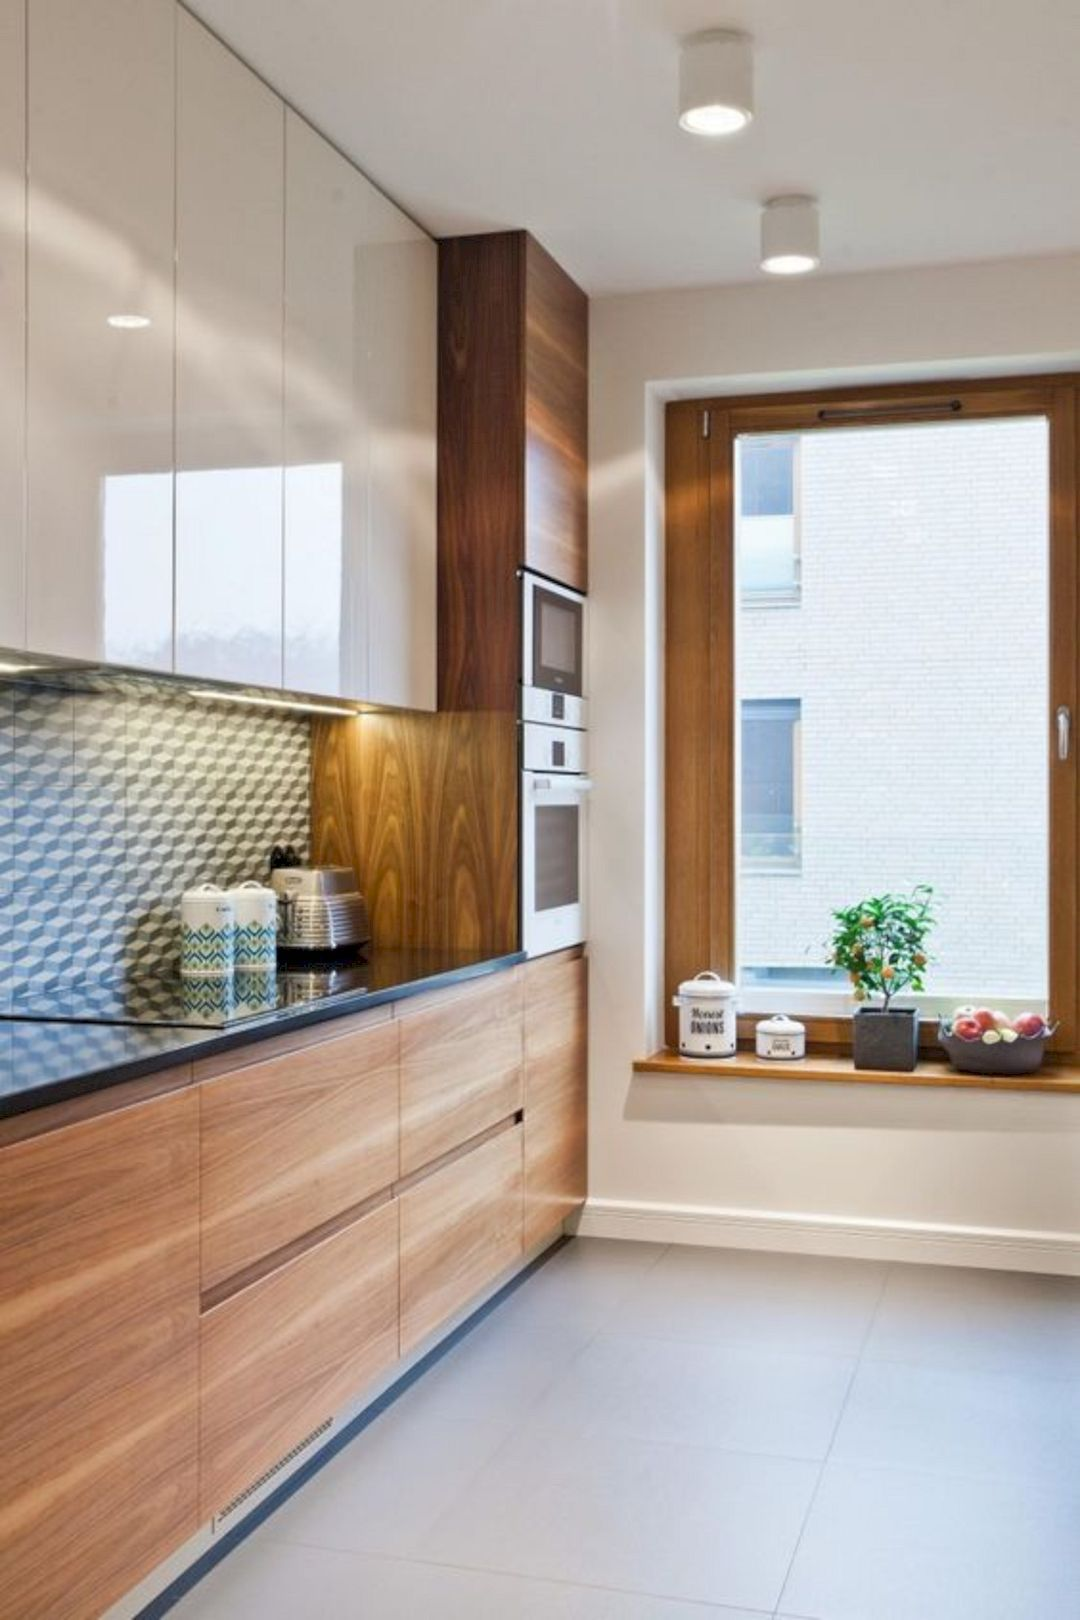 Small Kitchen Remodeling Ideas With Oak Cabinets Html on modern kitchen with oak cabinets, kitchen colors with oak cabinets, kitchen remodeling ideas with white cabinets, kitchen decor with oak cabinets, kitchen accessories with oak cabinets, kitchen decorating with oak cabinets, kitchen lighting with oak cabinets, kitchen renovation with oak cabinets, remodeling a kitchen with oak cabinets, kitchen flooring with oak cabinets, kitchen tiles with oak cabinets, kitchen makeovers with oak cabinets,